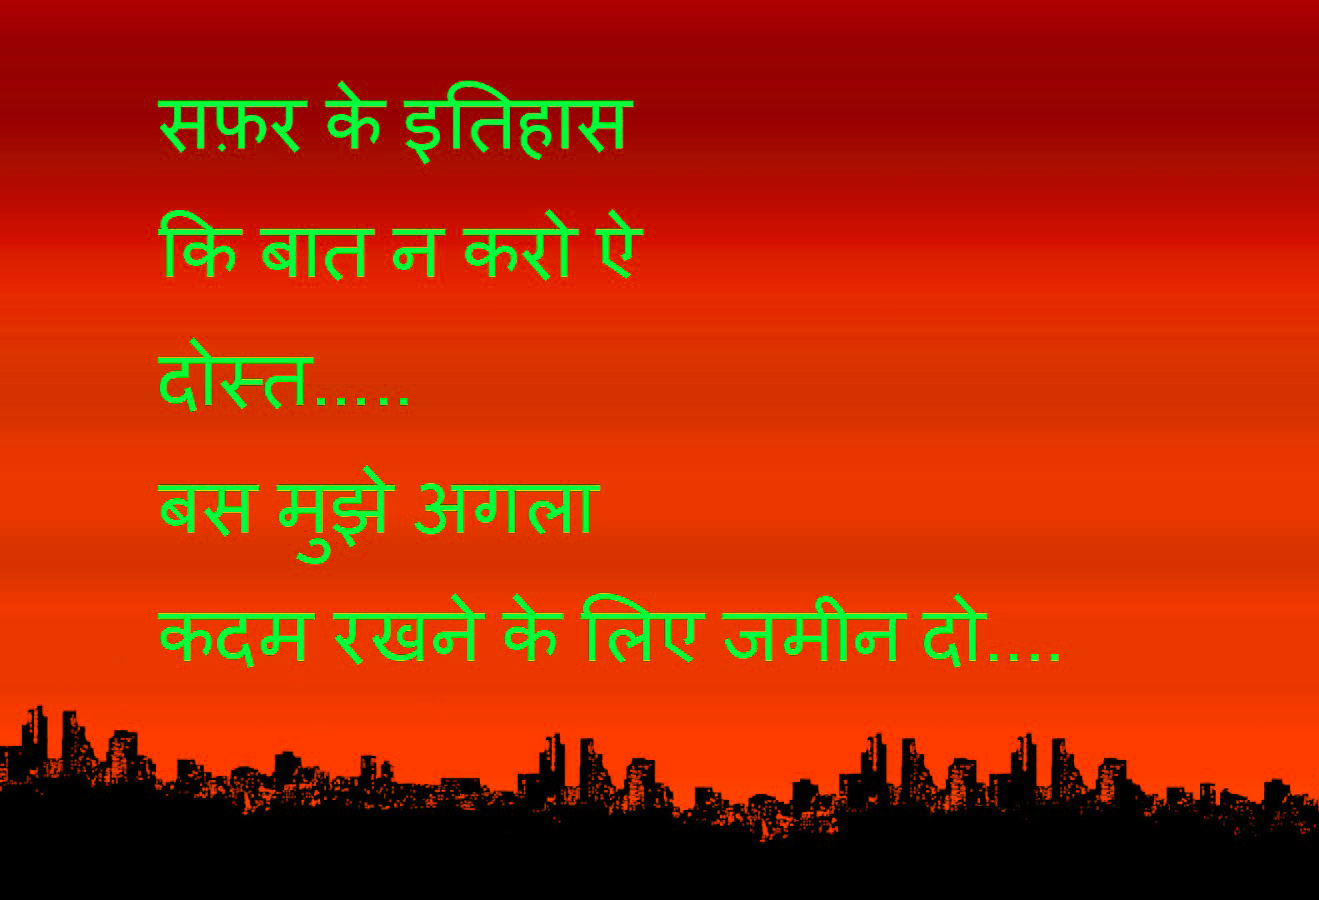 Hindi Bewafa Shayari Images Wallpaper Photo Pic Download